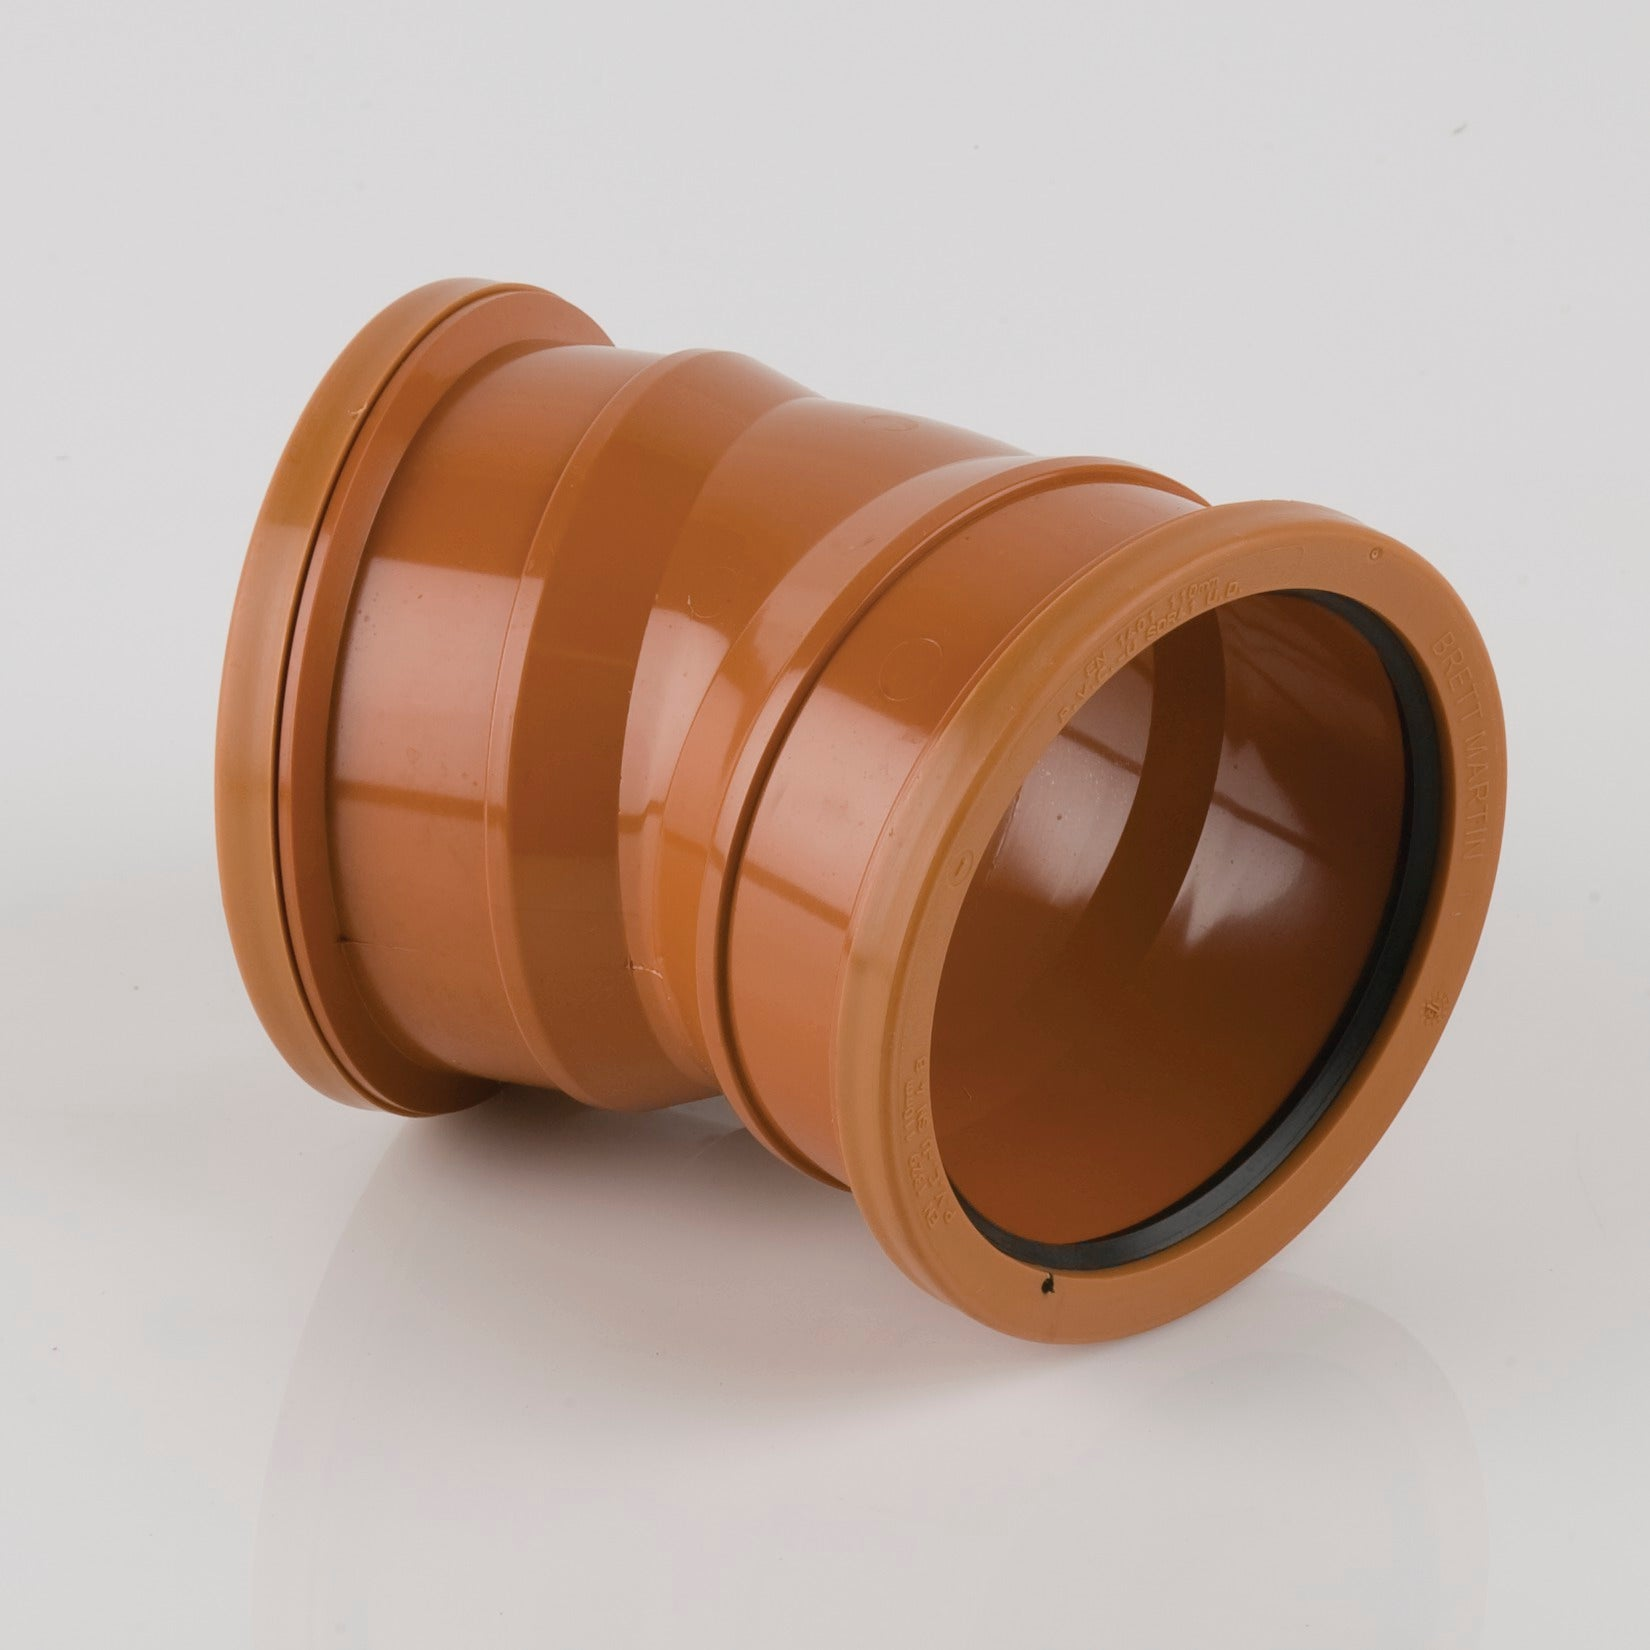 22.5 Degrees 110mm Double Socket Pipe Bend (Terracotta Orange)